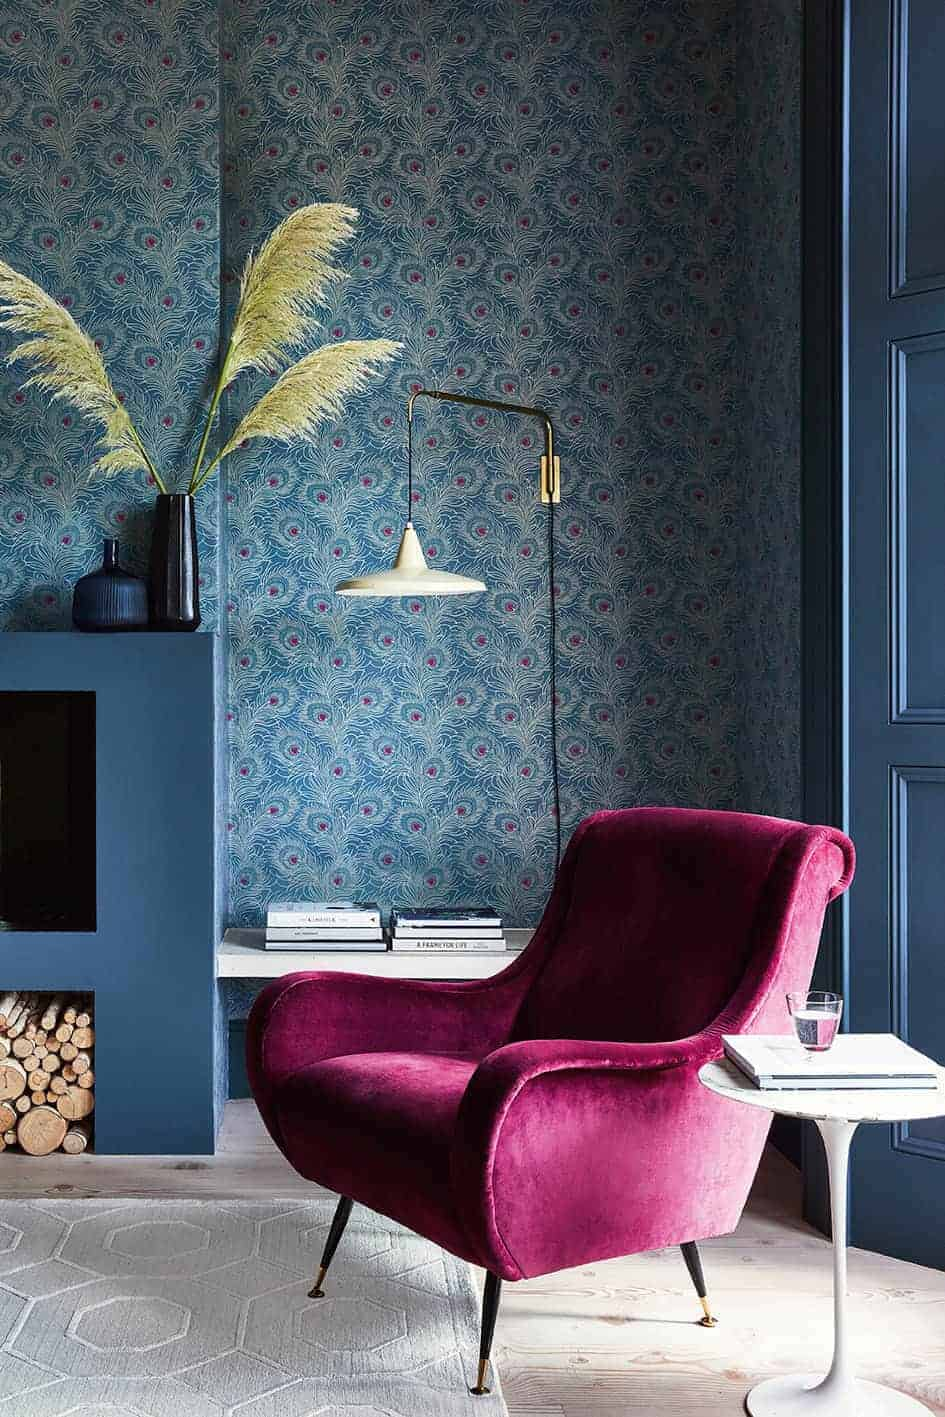 love this peacock feather blue Carlton House Terrace wallpaper from the new London Wallpapers V collection launching January 2019 and based on fragments of designs stored in English Heritage's wallpaper archive. Click through for more images from the collection as well as other wallpaper designs you'll love to decorate with